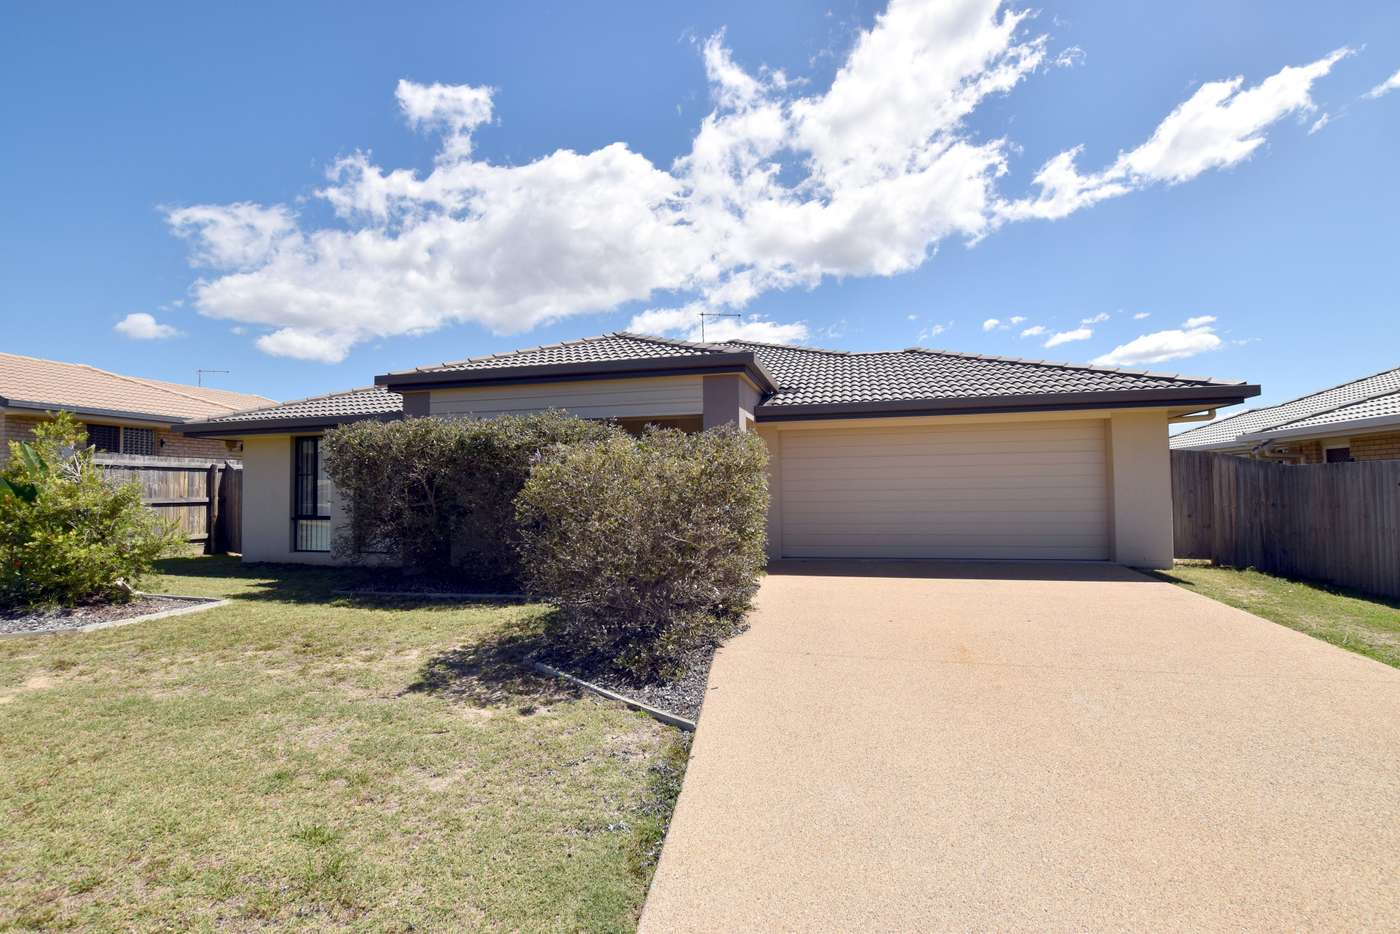 Main view of Homely house listing, 11 Fremont Street, Calliope QLD 4680